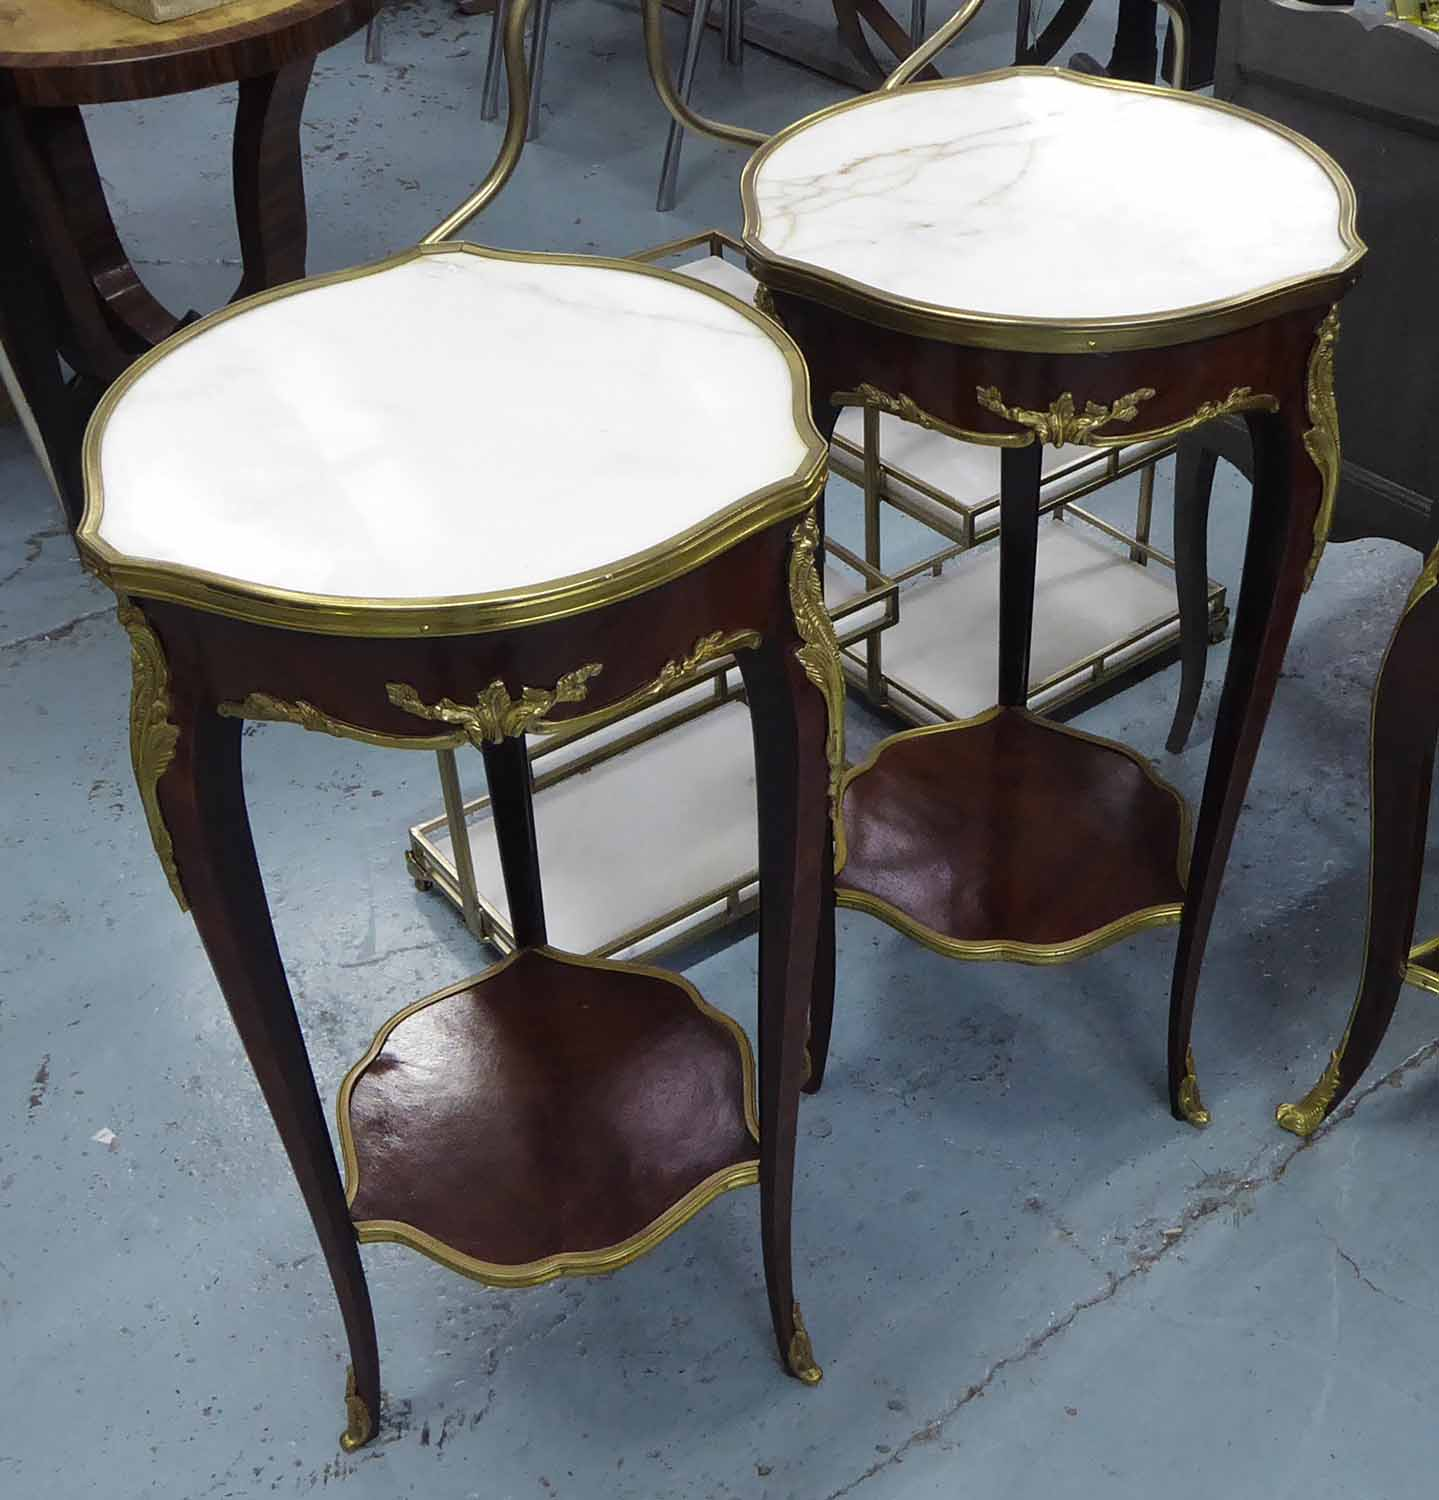 Lot 13 - JARDINIERE STANDS, a pair, Louis XV style with marble tops, 40cm x 40cm x 76cm H.